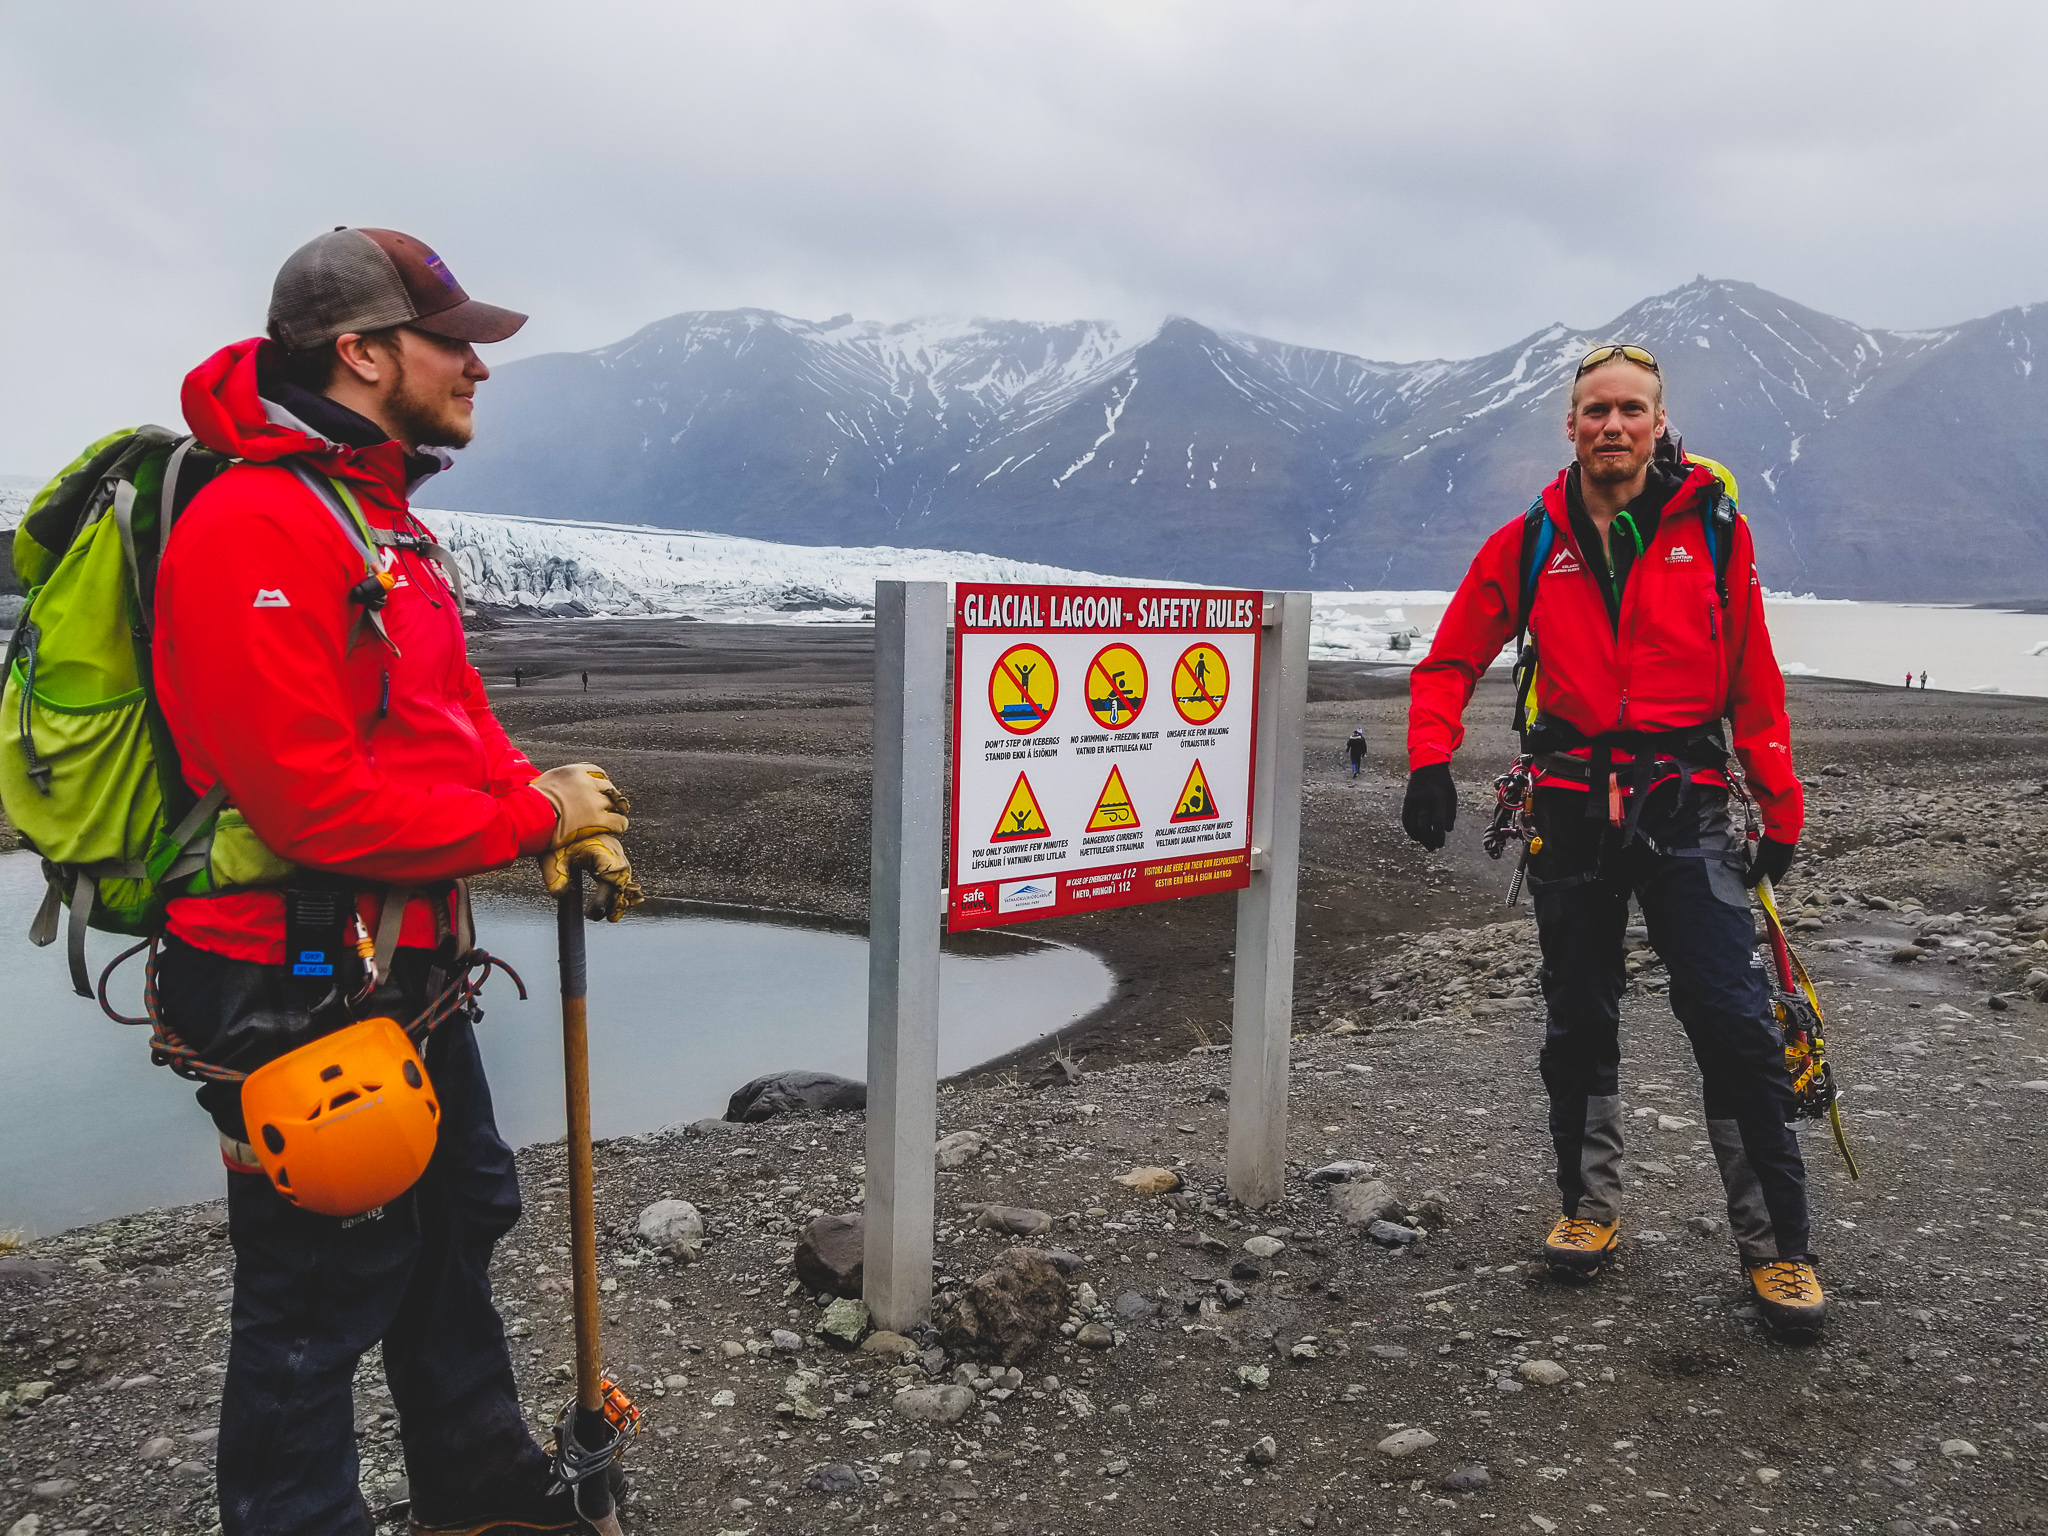 Iceland glacier guides - Icelandic Mountain Guides